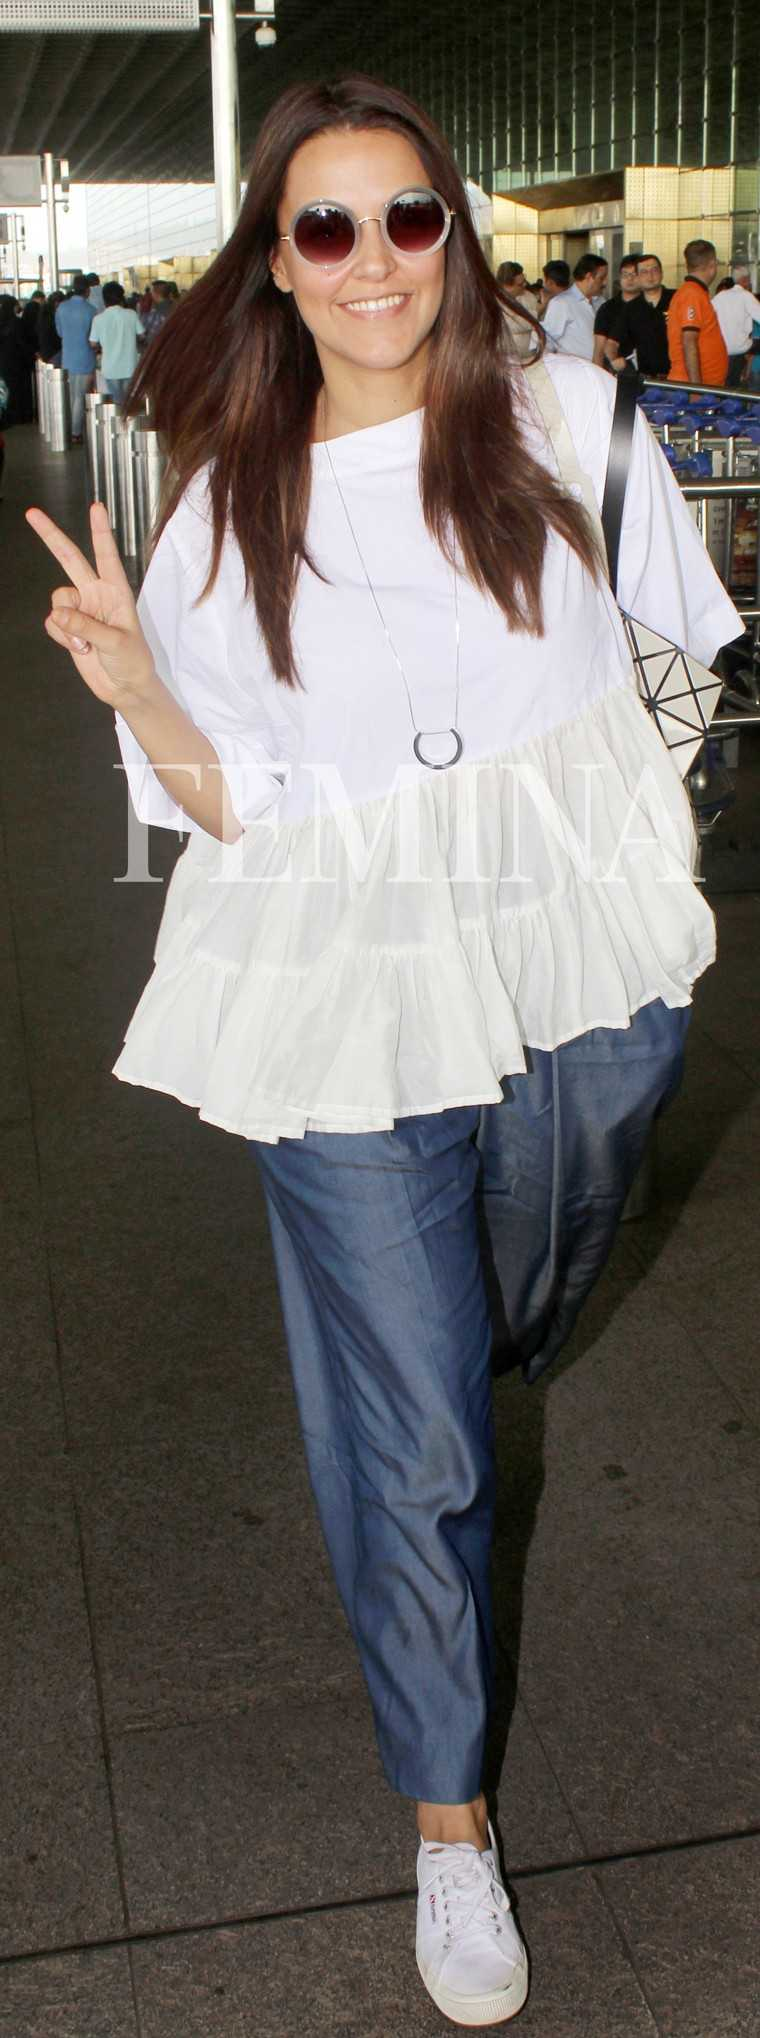 Neha Dupia: Neha rocked her travel gear in flared trousers, classic white sneakers and a matching loose blouse. The geometric tote made for her statement accessory.